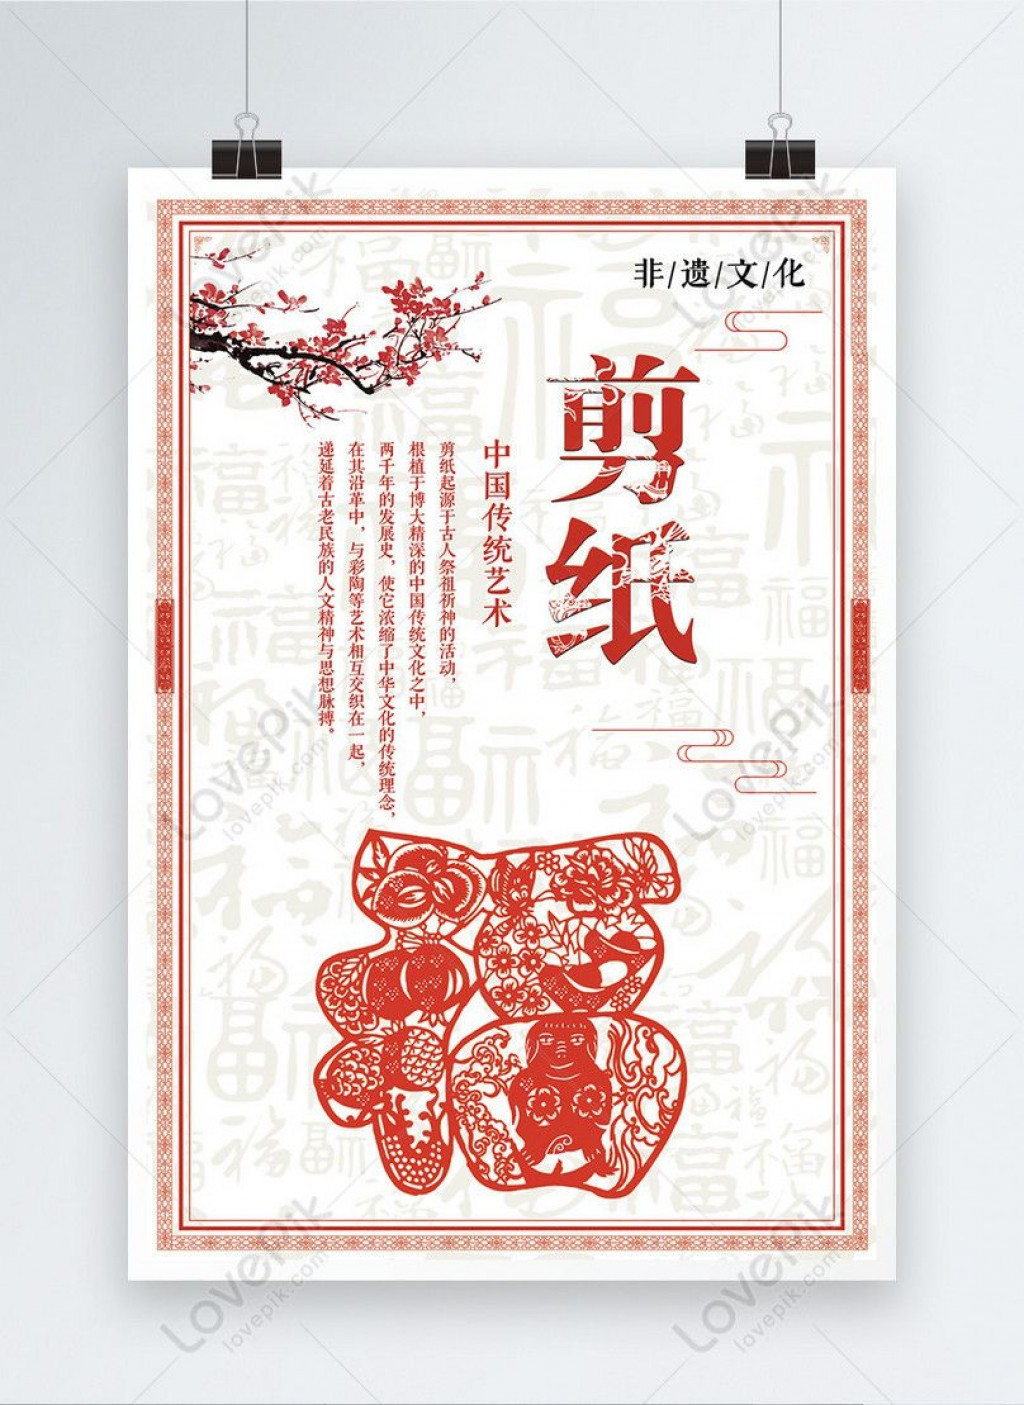 003 Fantastic Chinese Paper Cut Template Concept Large